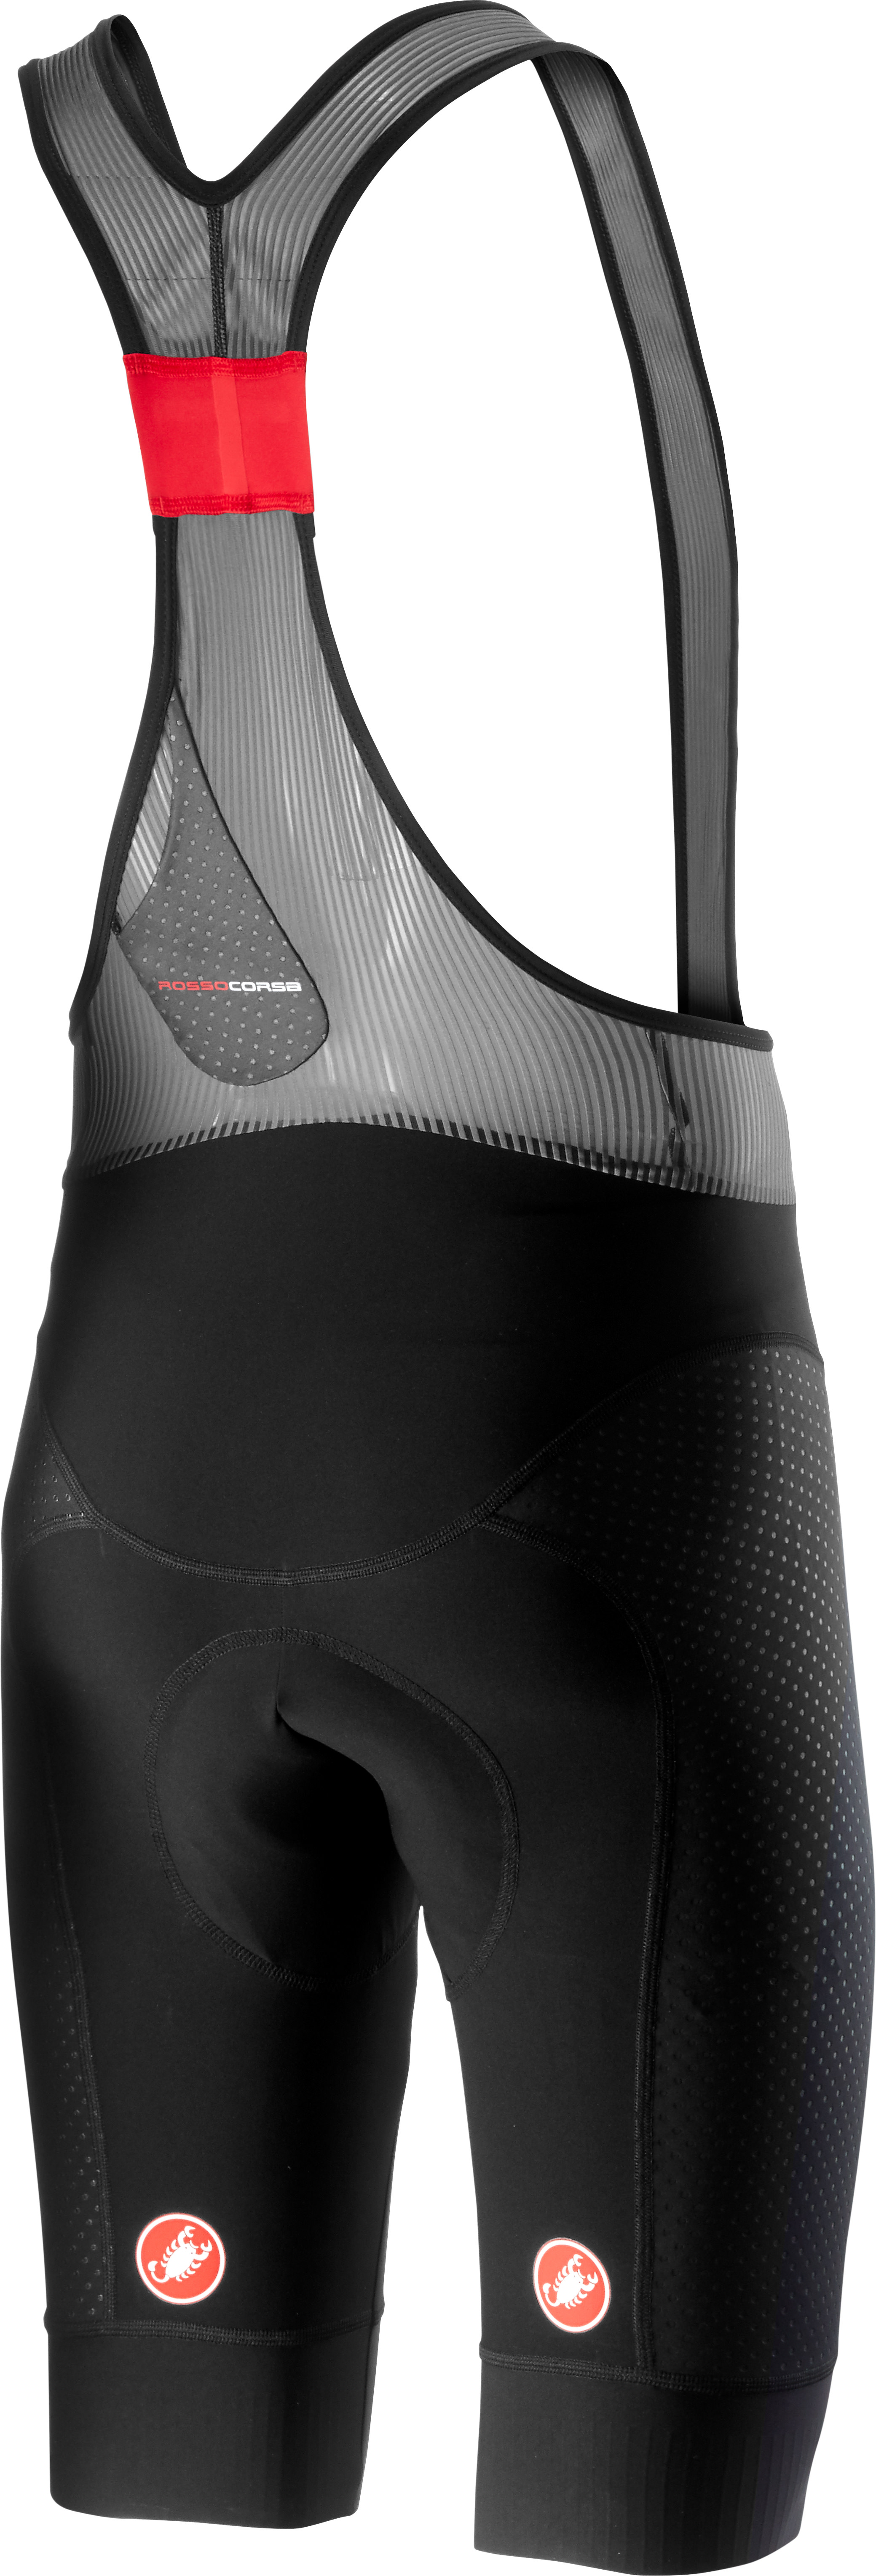 88246c44afb The Free Aero Race 4 has been completely re-engineered to improve the  short s performance